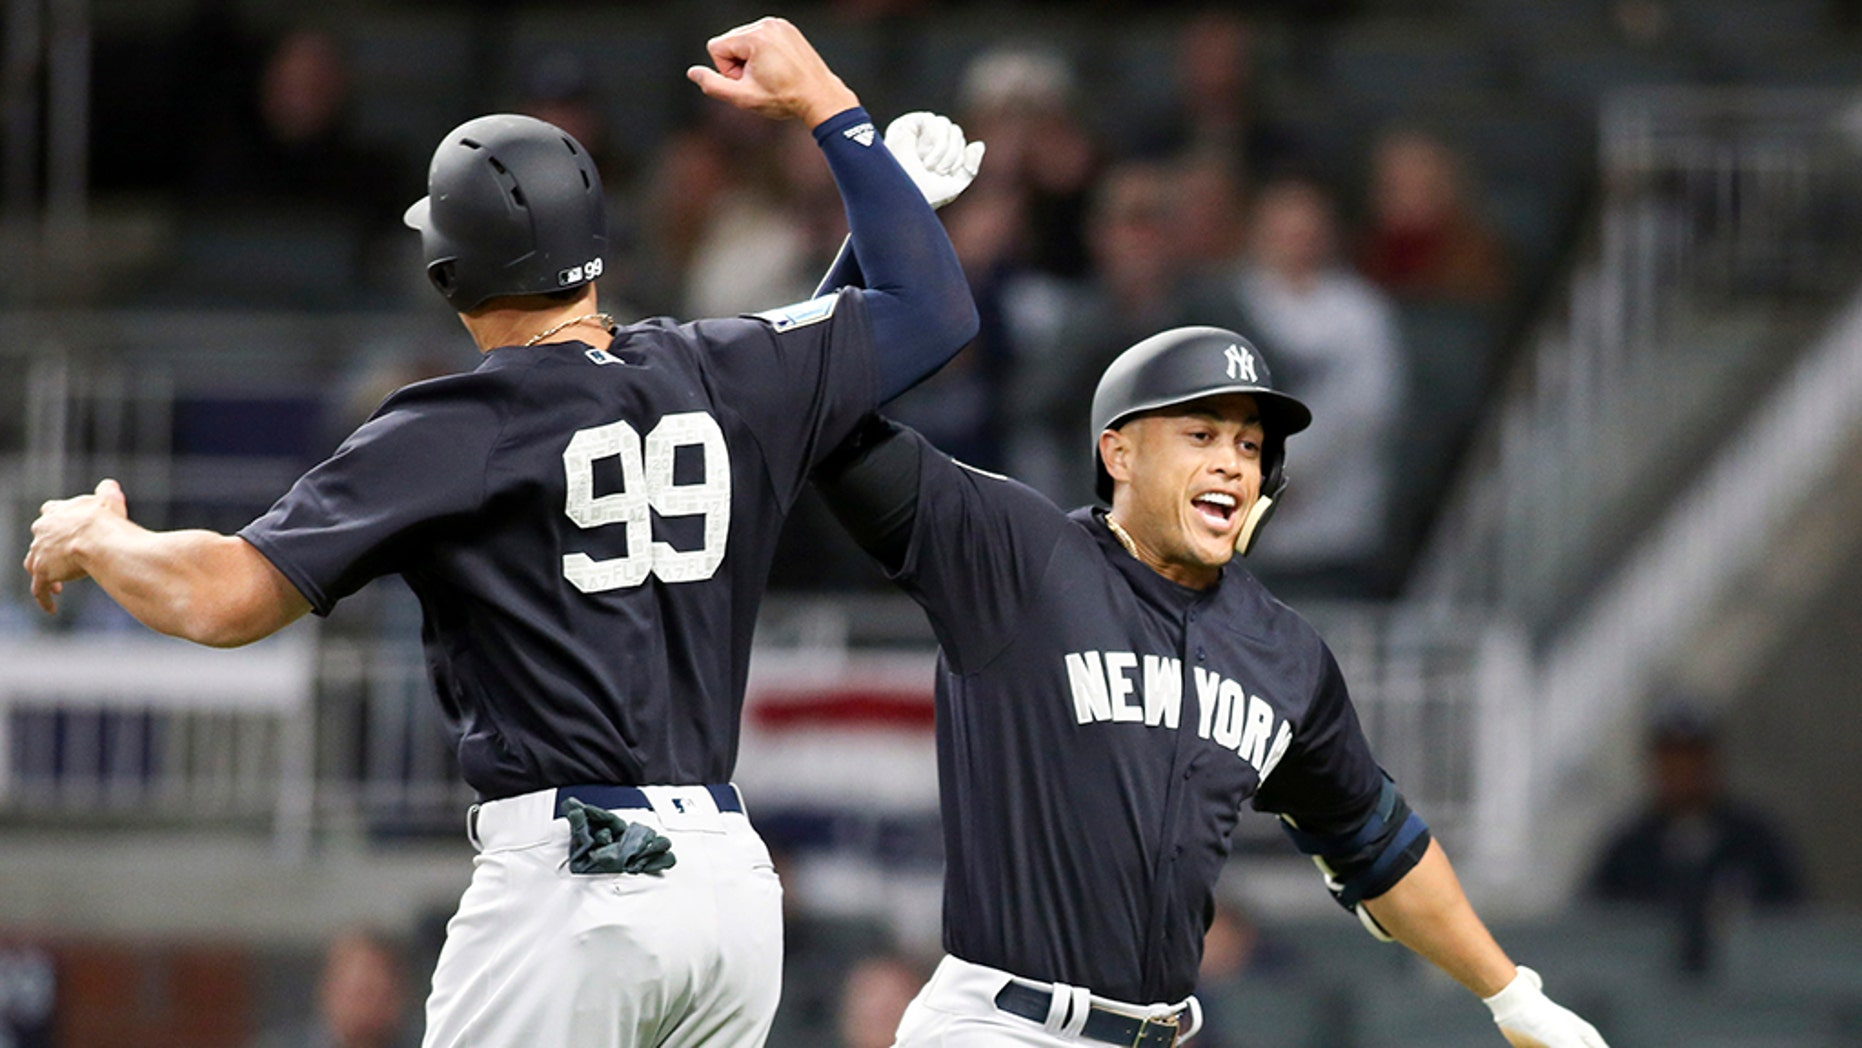 The Yes Network saw record-breaking ratings during Spring Training in 2018.